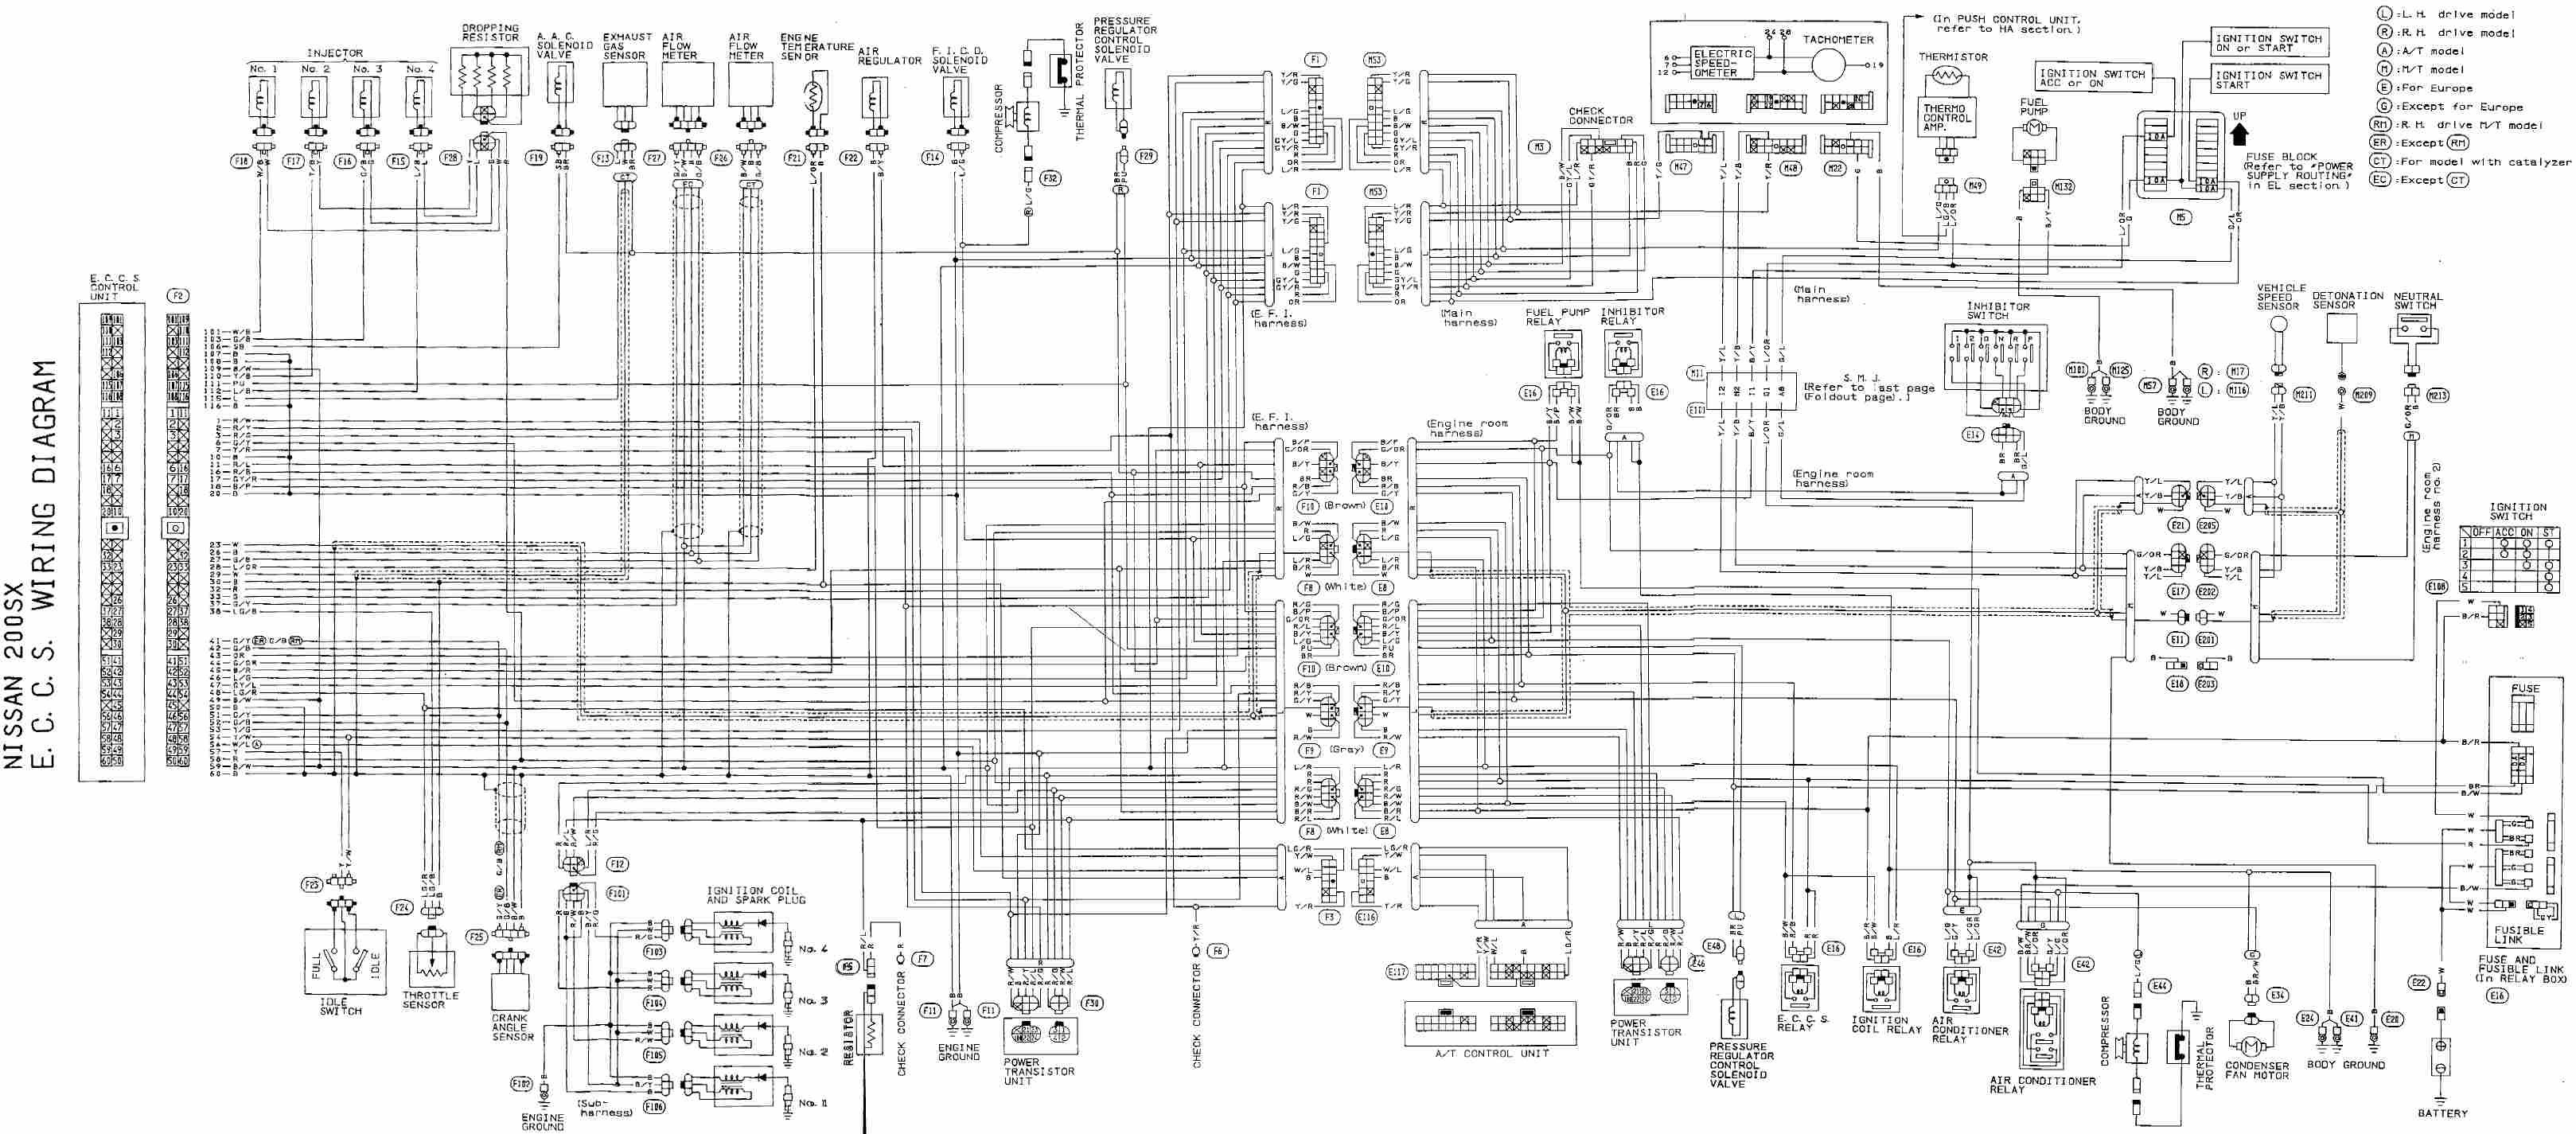 240sx maf wiring diagram